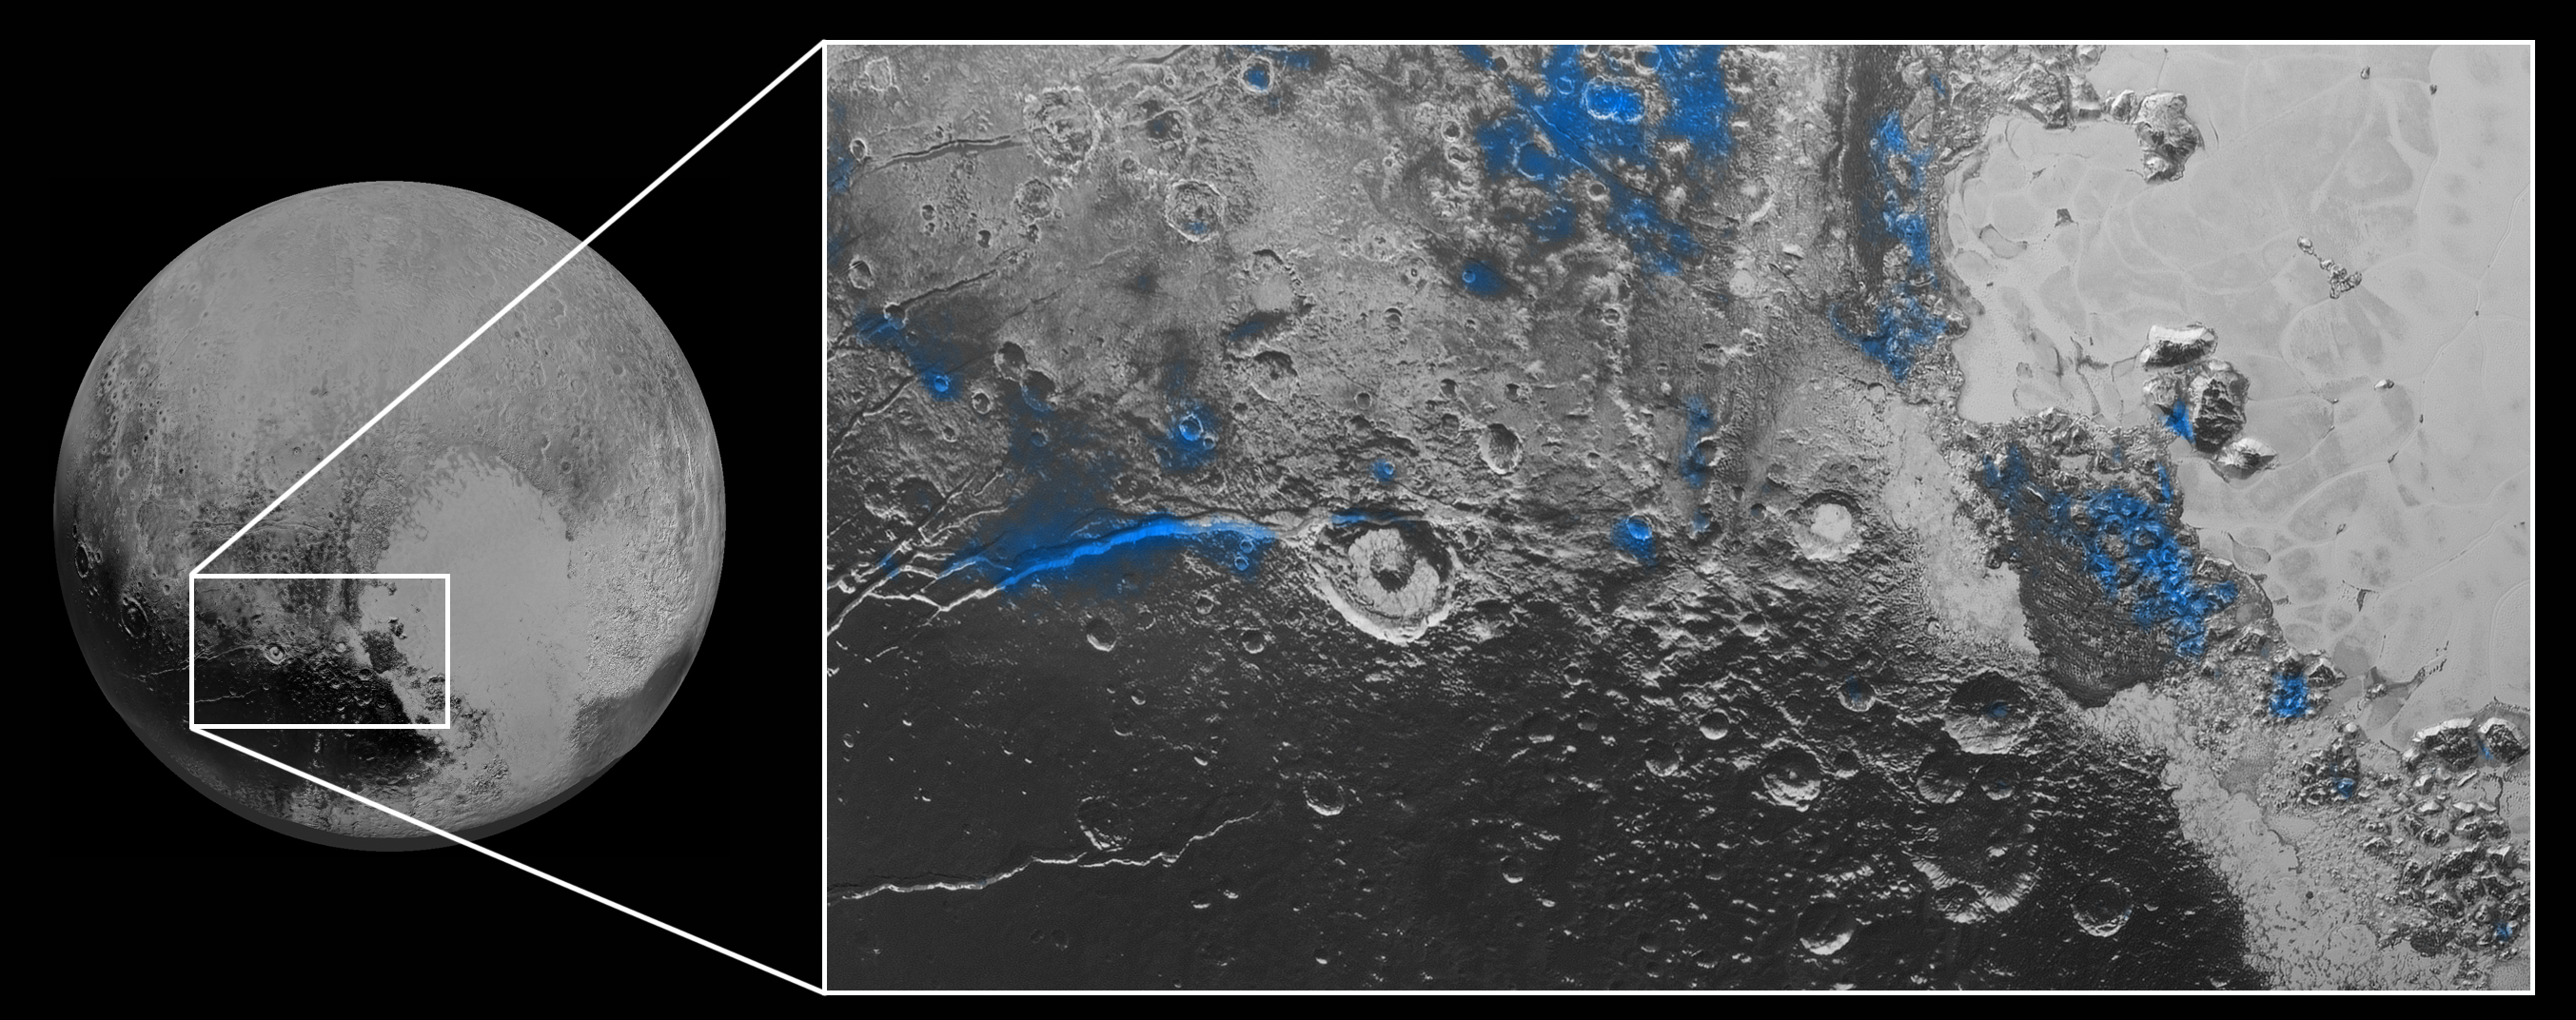 Regions with exposed water ice are highlighted in blue in this composite image from New Horizons' Ralph instrument, combining visible imagery from the Multispectral Visible Imaging Camera (MVIC) with infrared spectroscopy from the Linear Etalon Imaging Spectral Array (LEISA). The strongest signatures of water ice occur along Virgil Fossa, just west of Elliot crater on the left side of the inset image, and also in Viking Terra near the top of the frame. A major outcrop also occurs in Baré Montes towards the right of the image, along with numerous much smaller outcrops, mostly associated with impact craters and valleys between mountains. The scene is approximately 280 miles (450 kilometers) across. Note that all surface feature names are informal. Credit: NASA/JHUAPL/SWRI